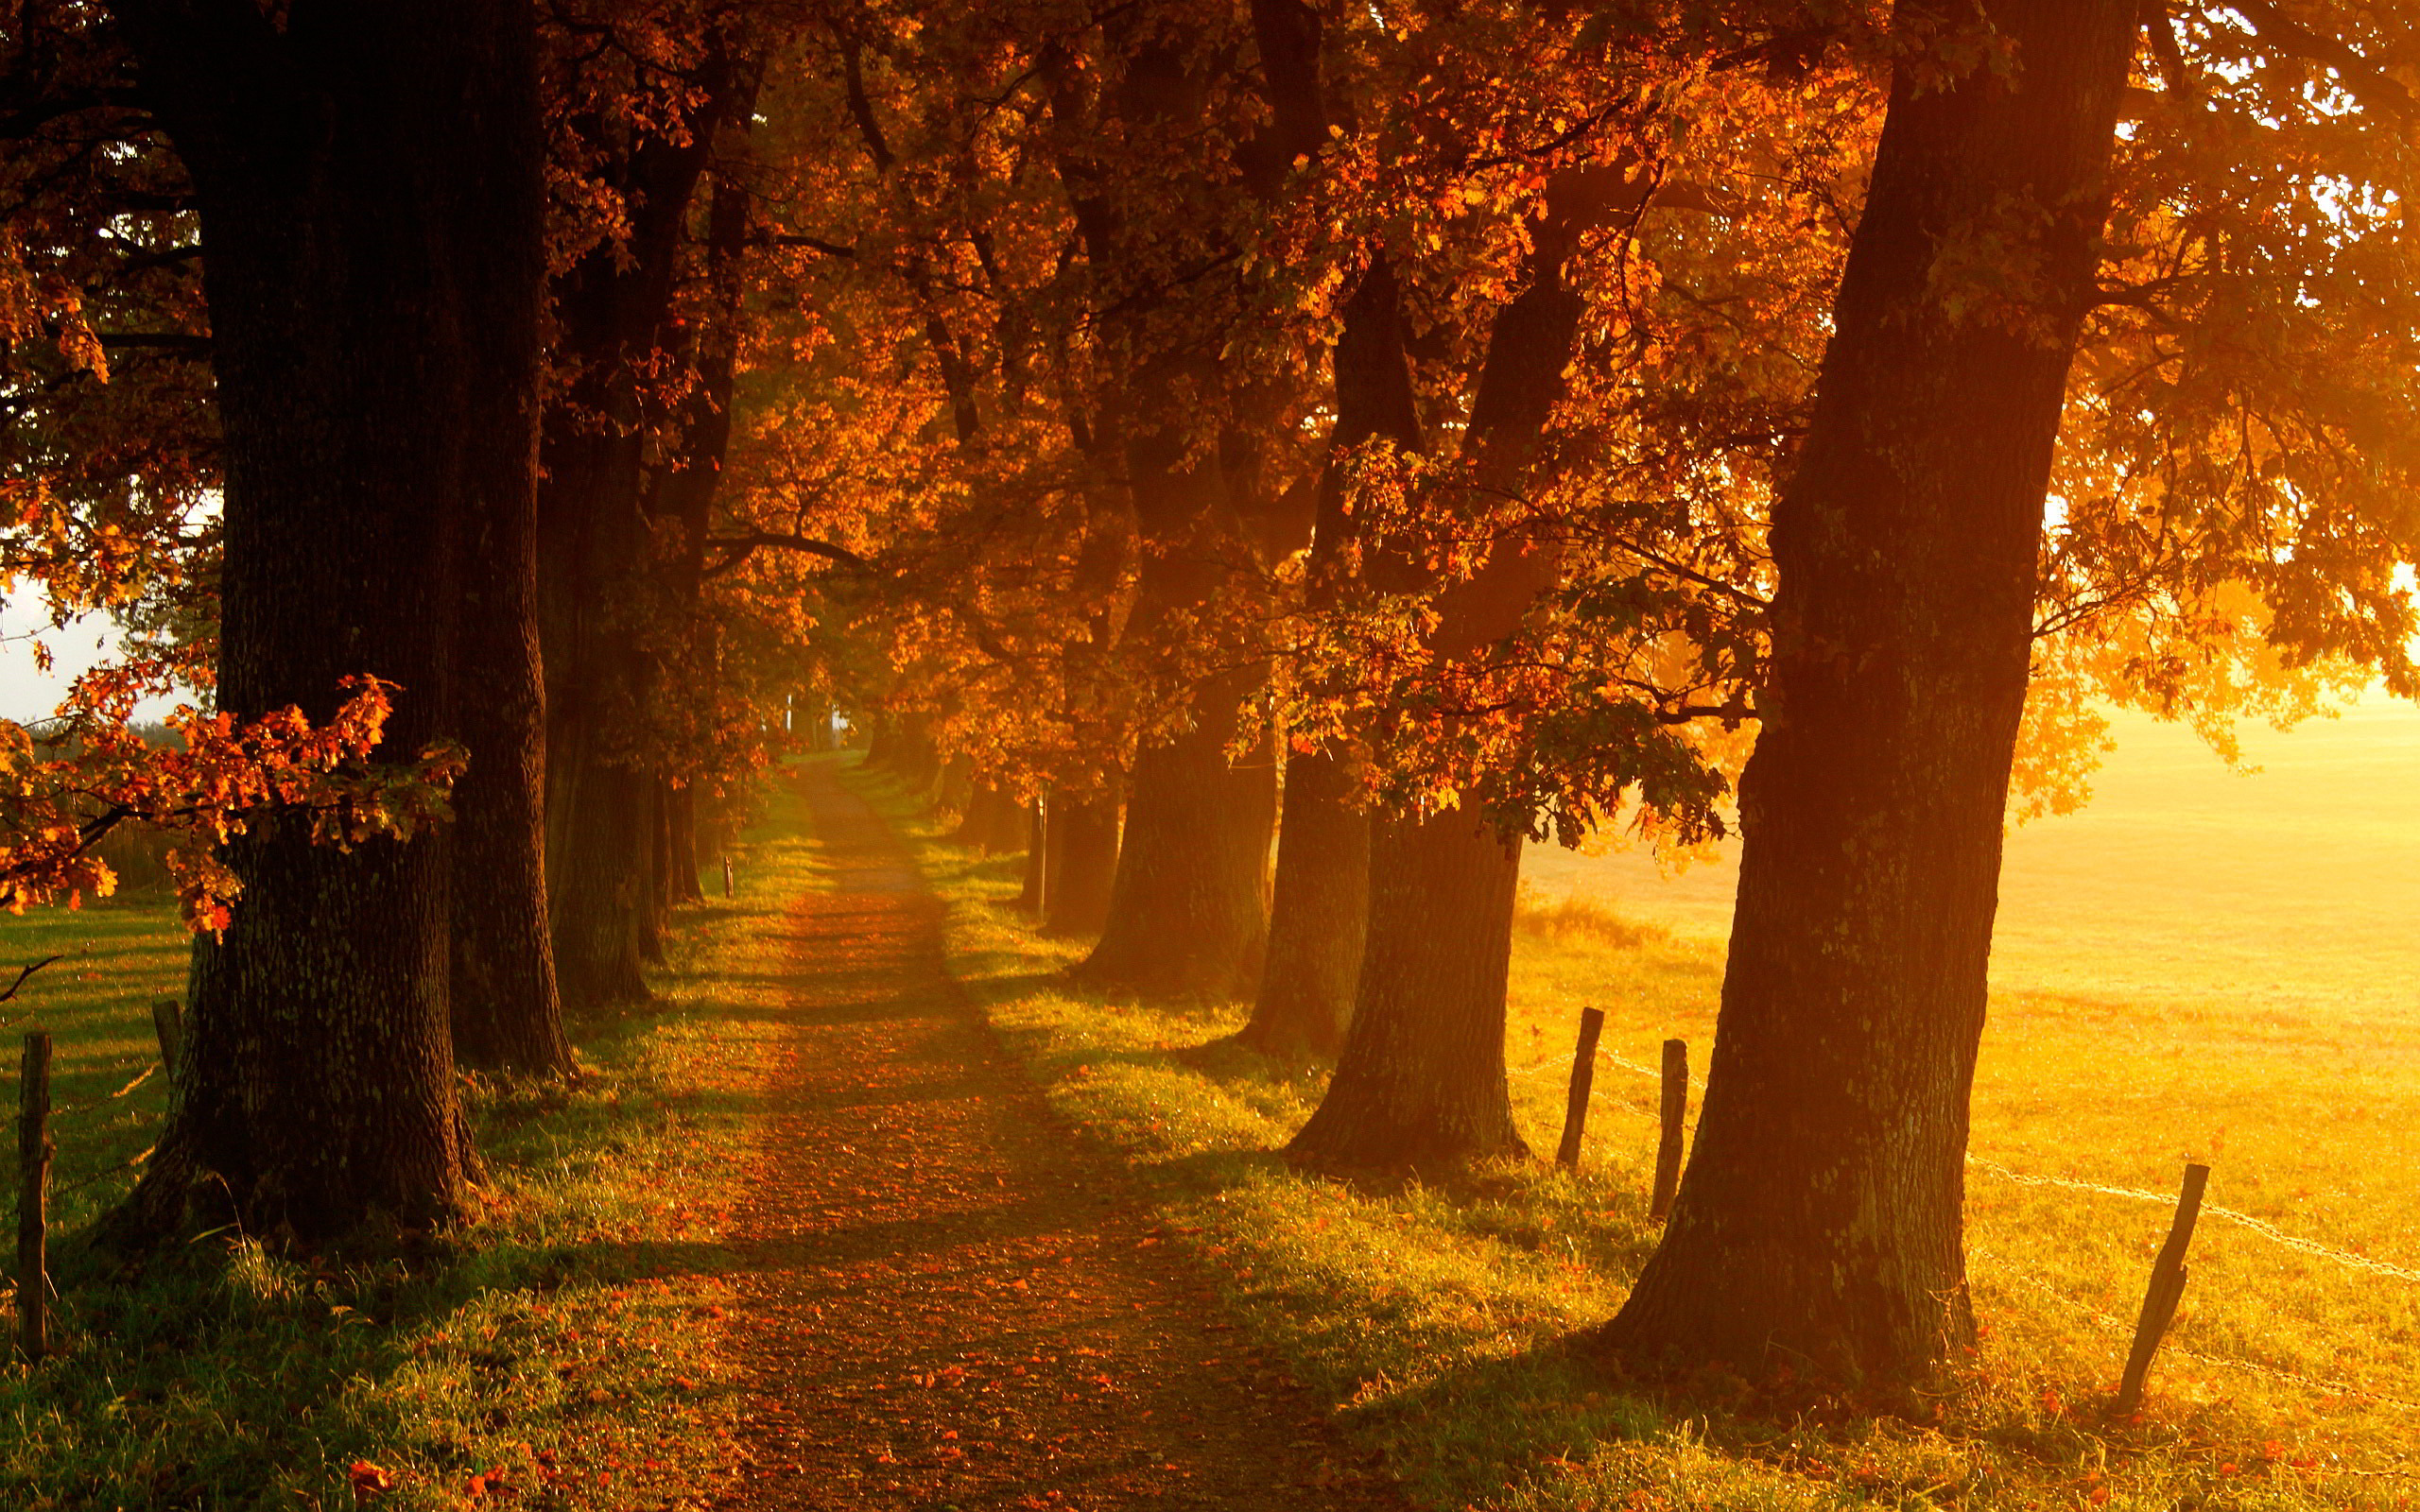 Autumn Images Scenery HD Wallpaper And Background Photos